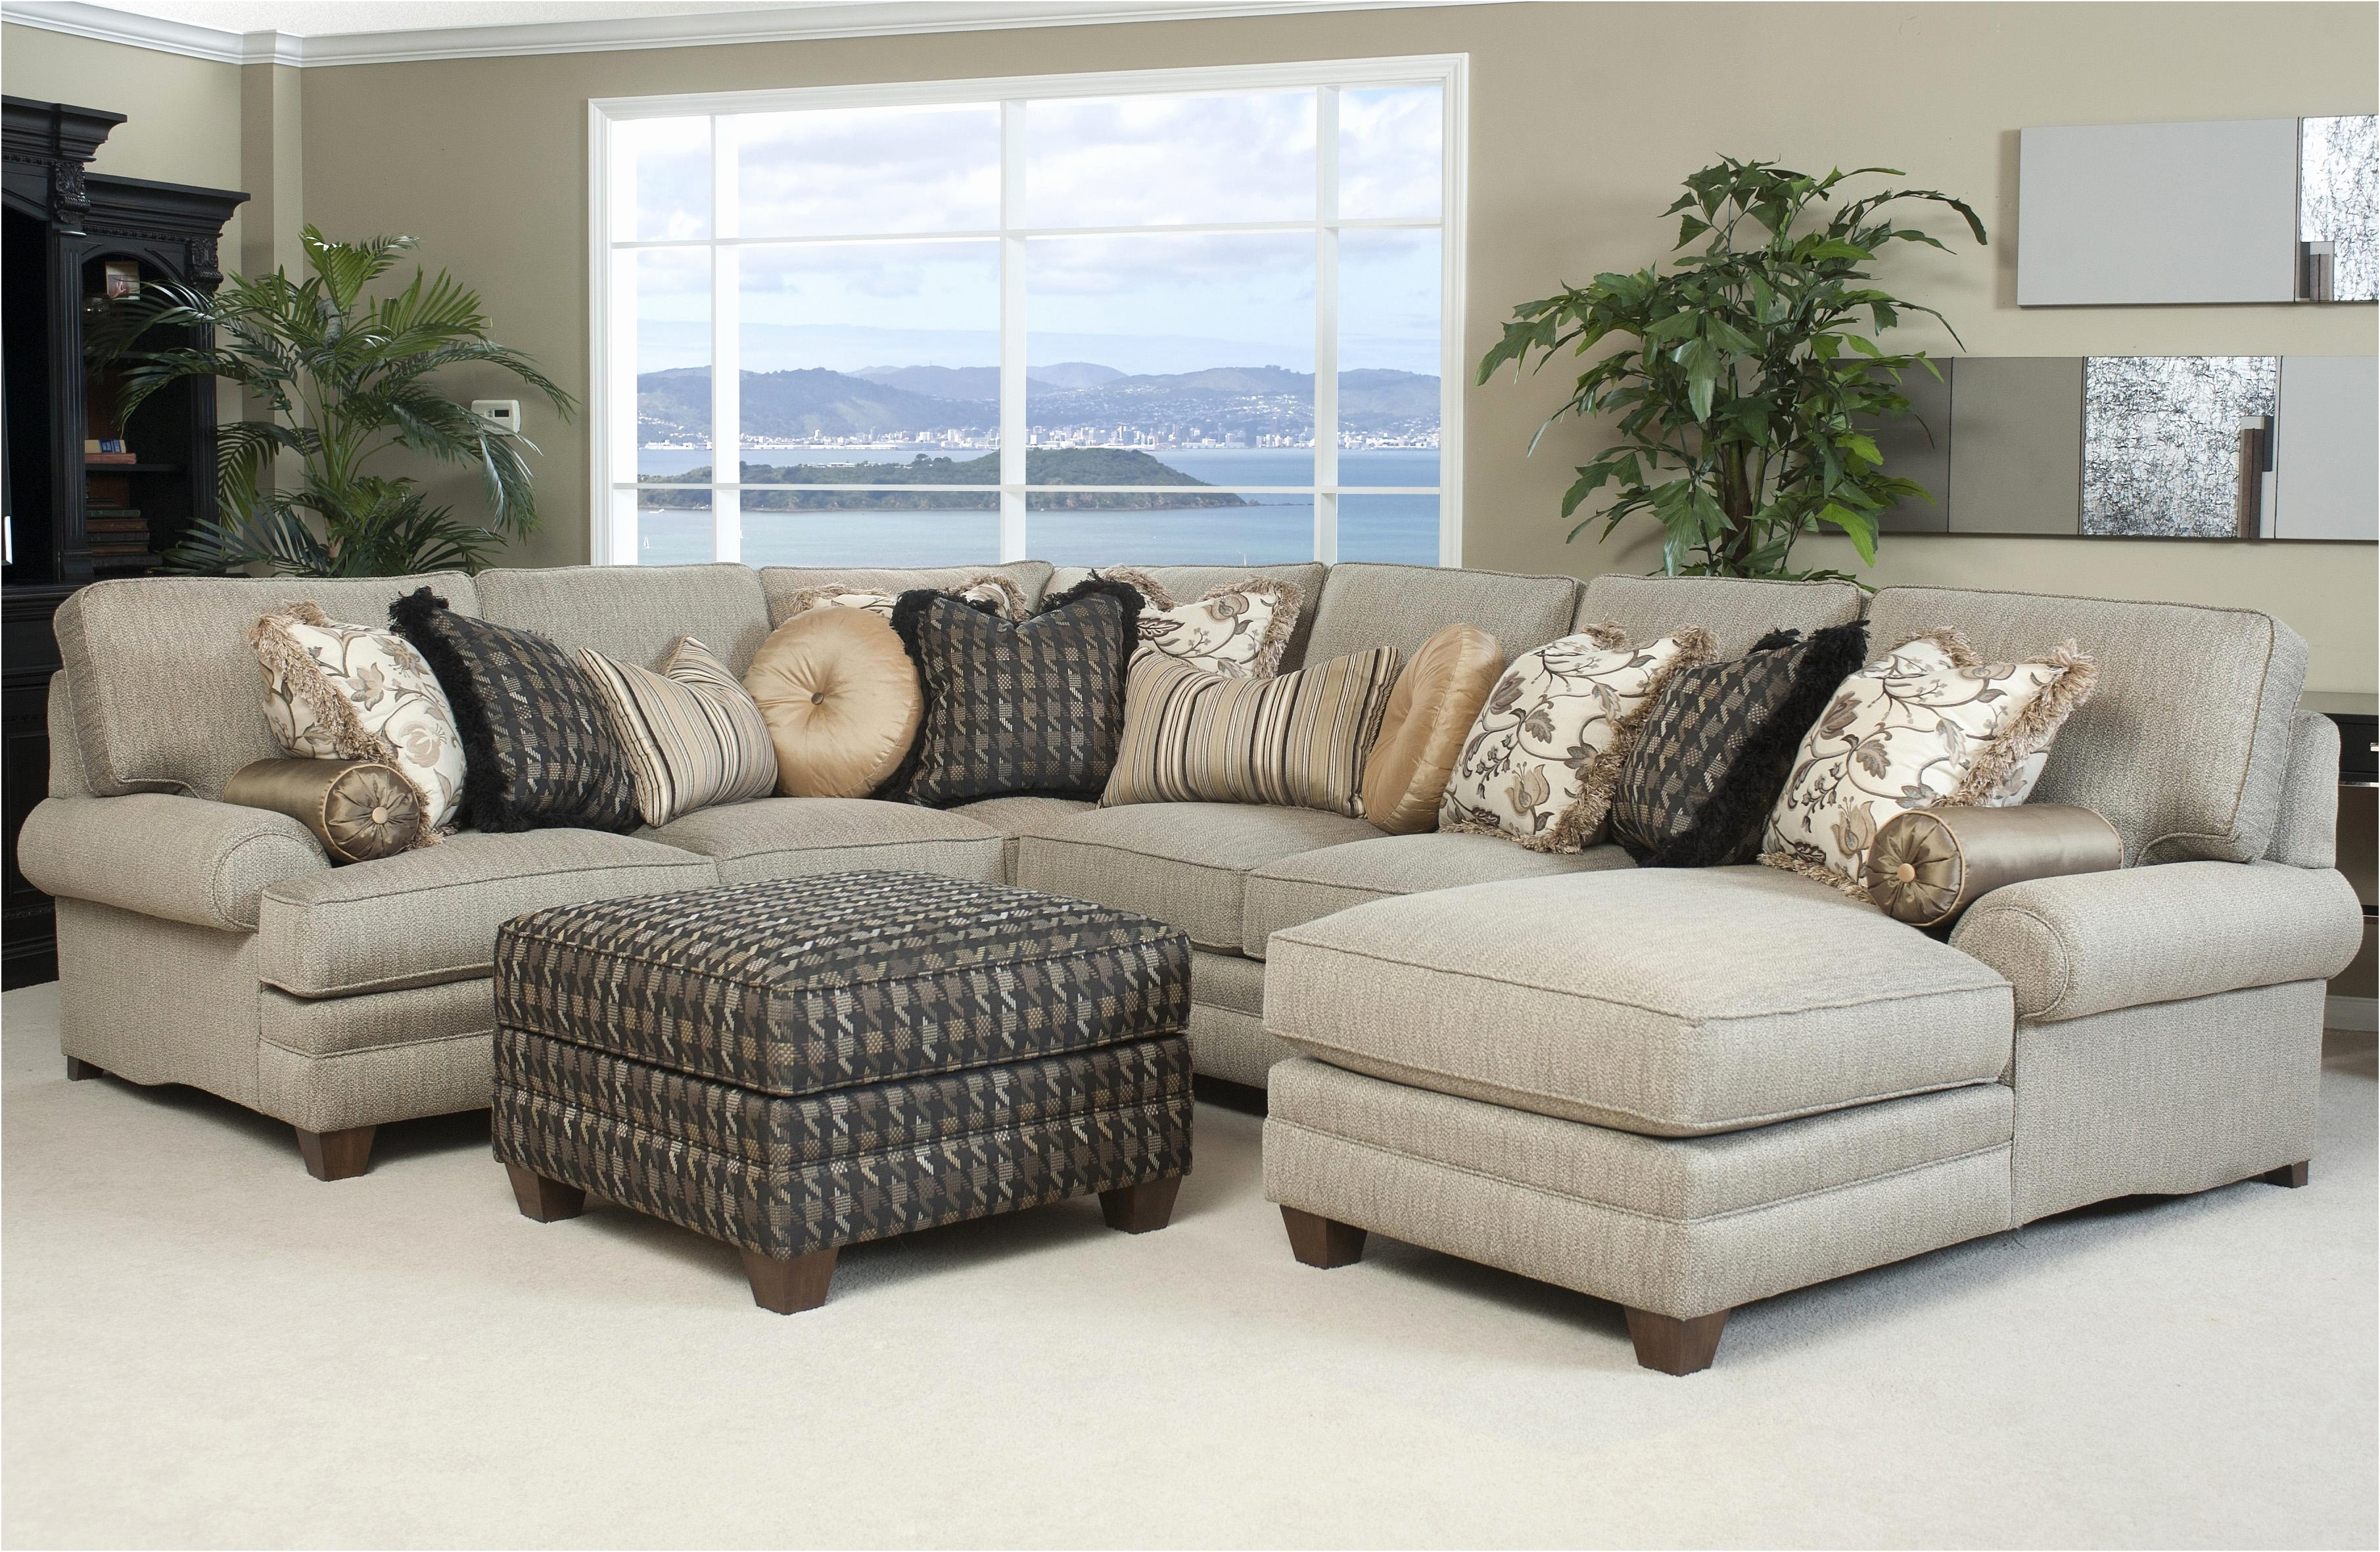 Most Up To Date Nanaimo Sectional Sofas For Inspirational Cheap Sectional Sofas For Sale Unique – Sofa (View 2 of 20)